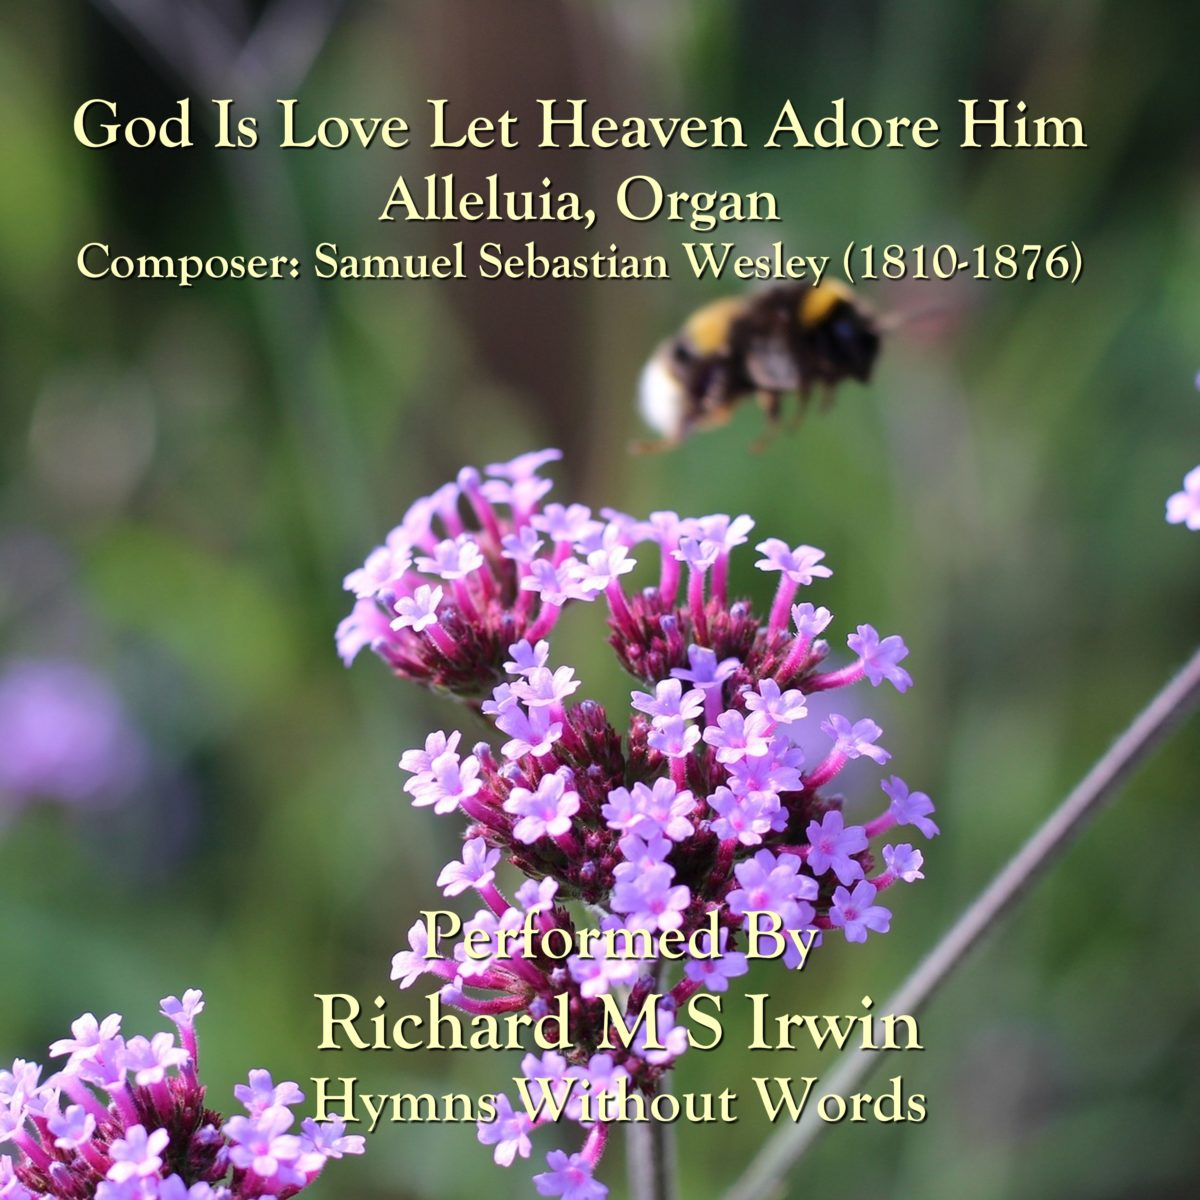 God Is Love Let Heaven Adore Him (Alleluia, Organ, 3 Verses)